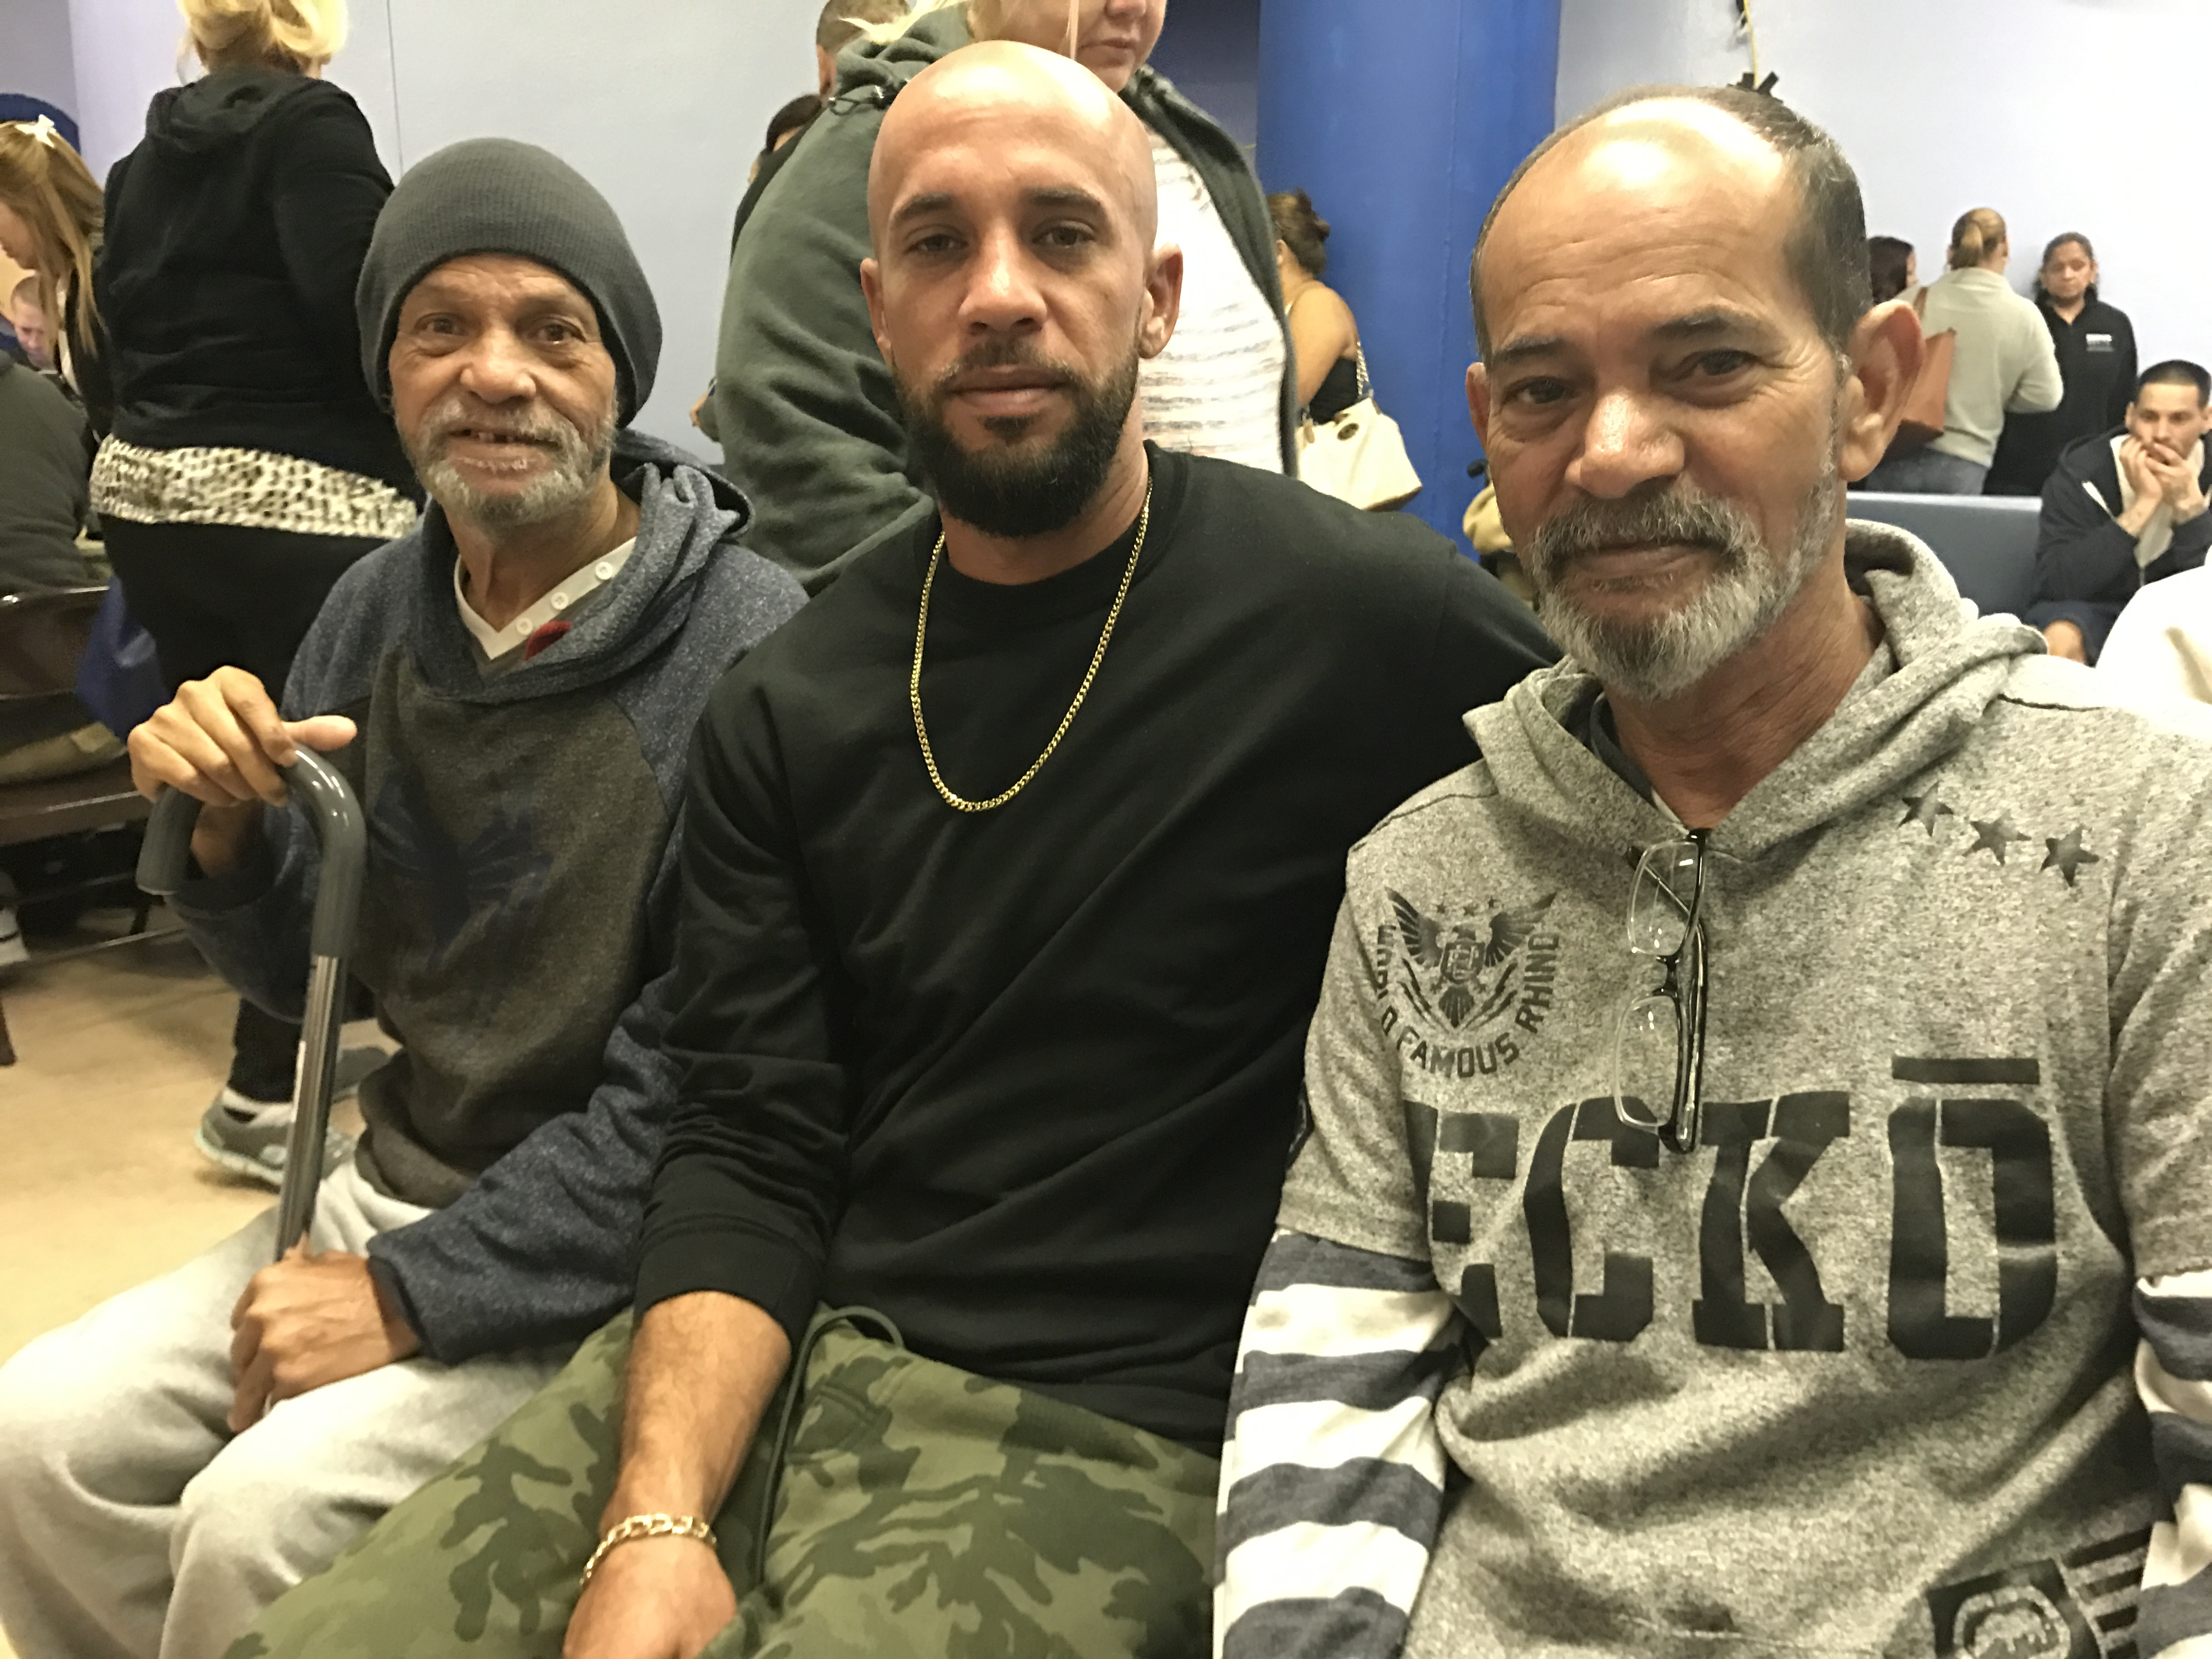 Victor Torres Jr. (center), his father Victor Tores Sr. (right) and his uncle Hector Torres (left) moved to Philadelphia after their homes in Puerto Rico were damaged by Hurricane Maria. They have one relative in Philadelphia.